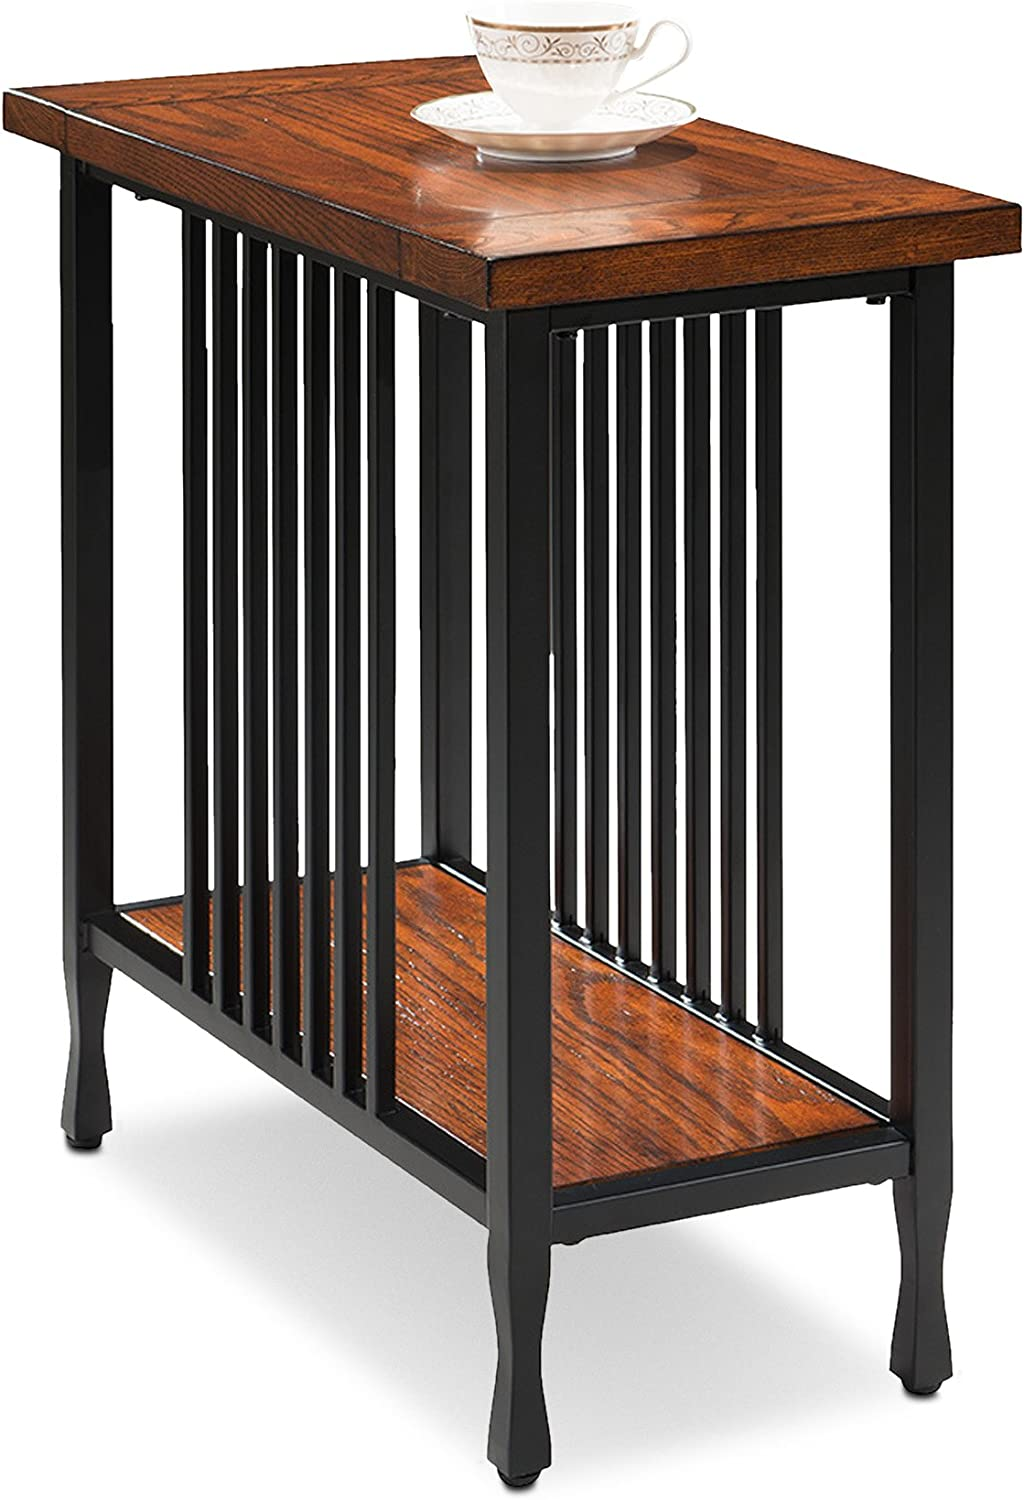 Leick Ironcraft Chairside Table